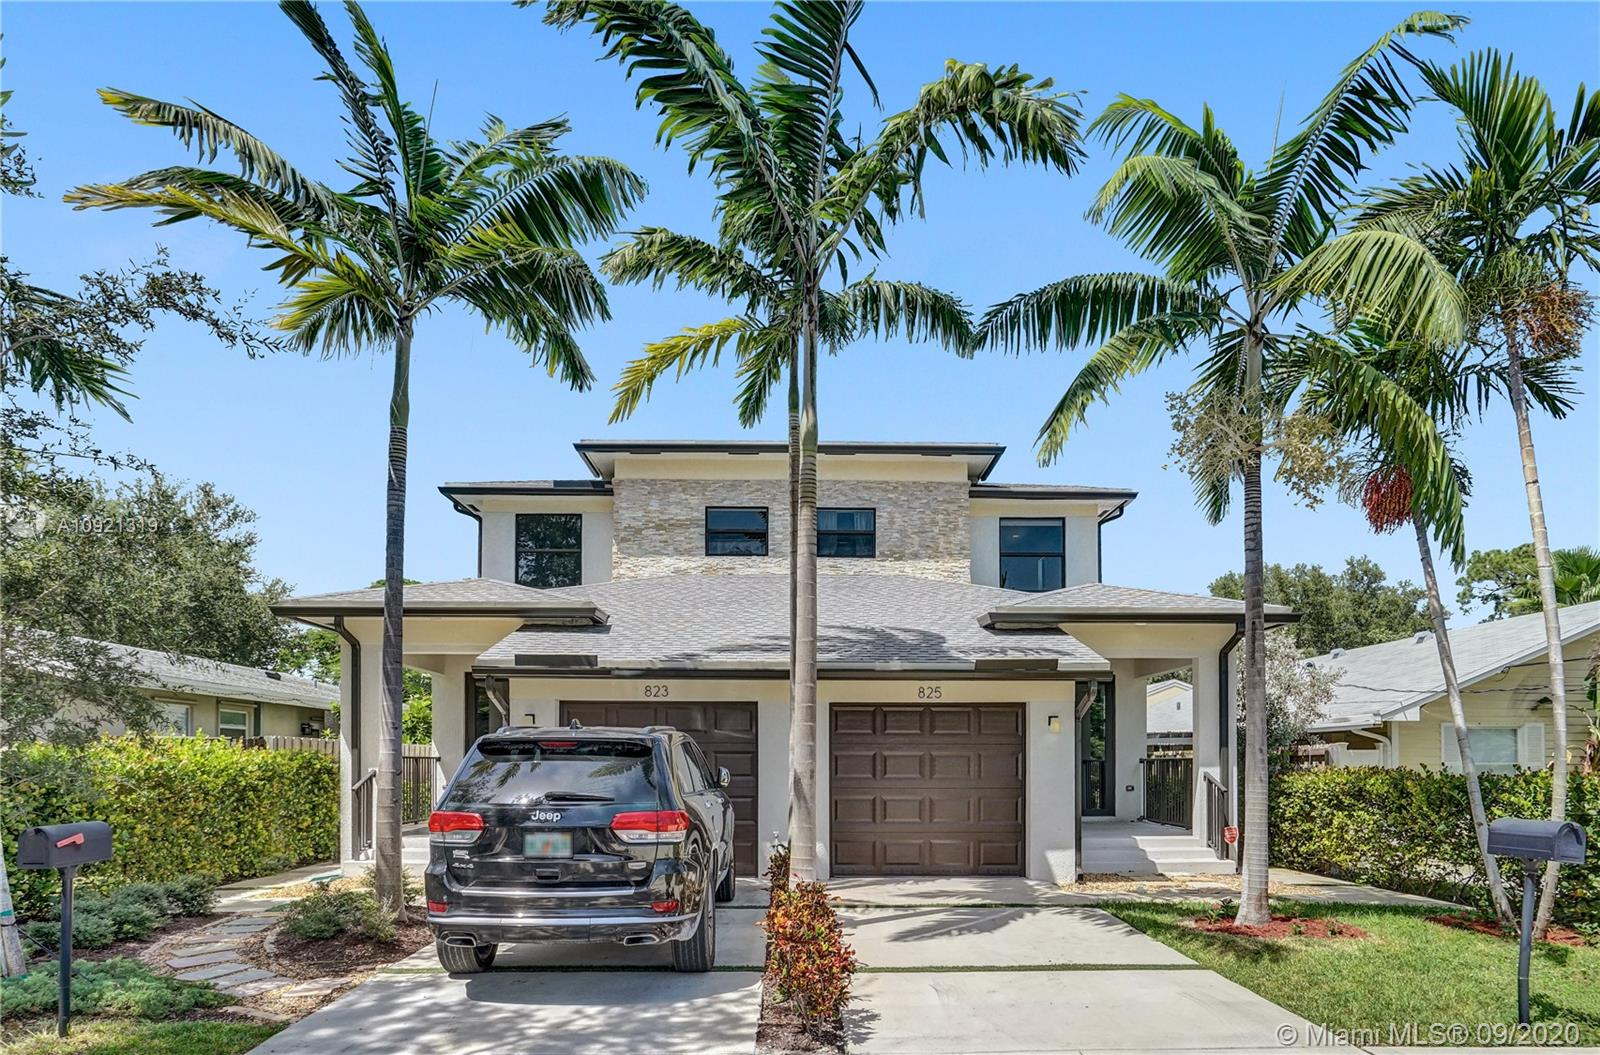 Beautiful townhome built in 2017 located in the heart of Fort Lauderdale. Just East of US-1 and North of 17th St Causeway and minutes from the beach, the new Whole Foods and all shopping areas. Open and modern floor plan with large family/dining area and breakfast area. Wood plank ceramic tile throughout the first floor and hard wood stairs. All windows and doors are hurricane impact glass and have custom blinds. Gourmet kitchen with Quartz Countertop & SS appliances. Spacious master suite with walk in closets and luxurious master bath. Laundry room conveniently located on the second floor. Private fenced backyard with a patio, room for a pool and outside extra storage. NO Association, no fees, no rules and regulations!